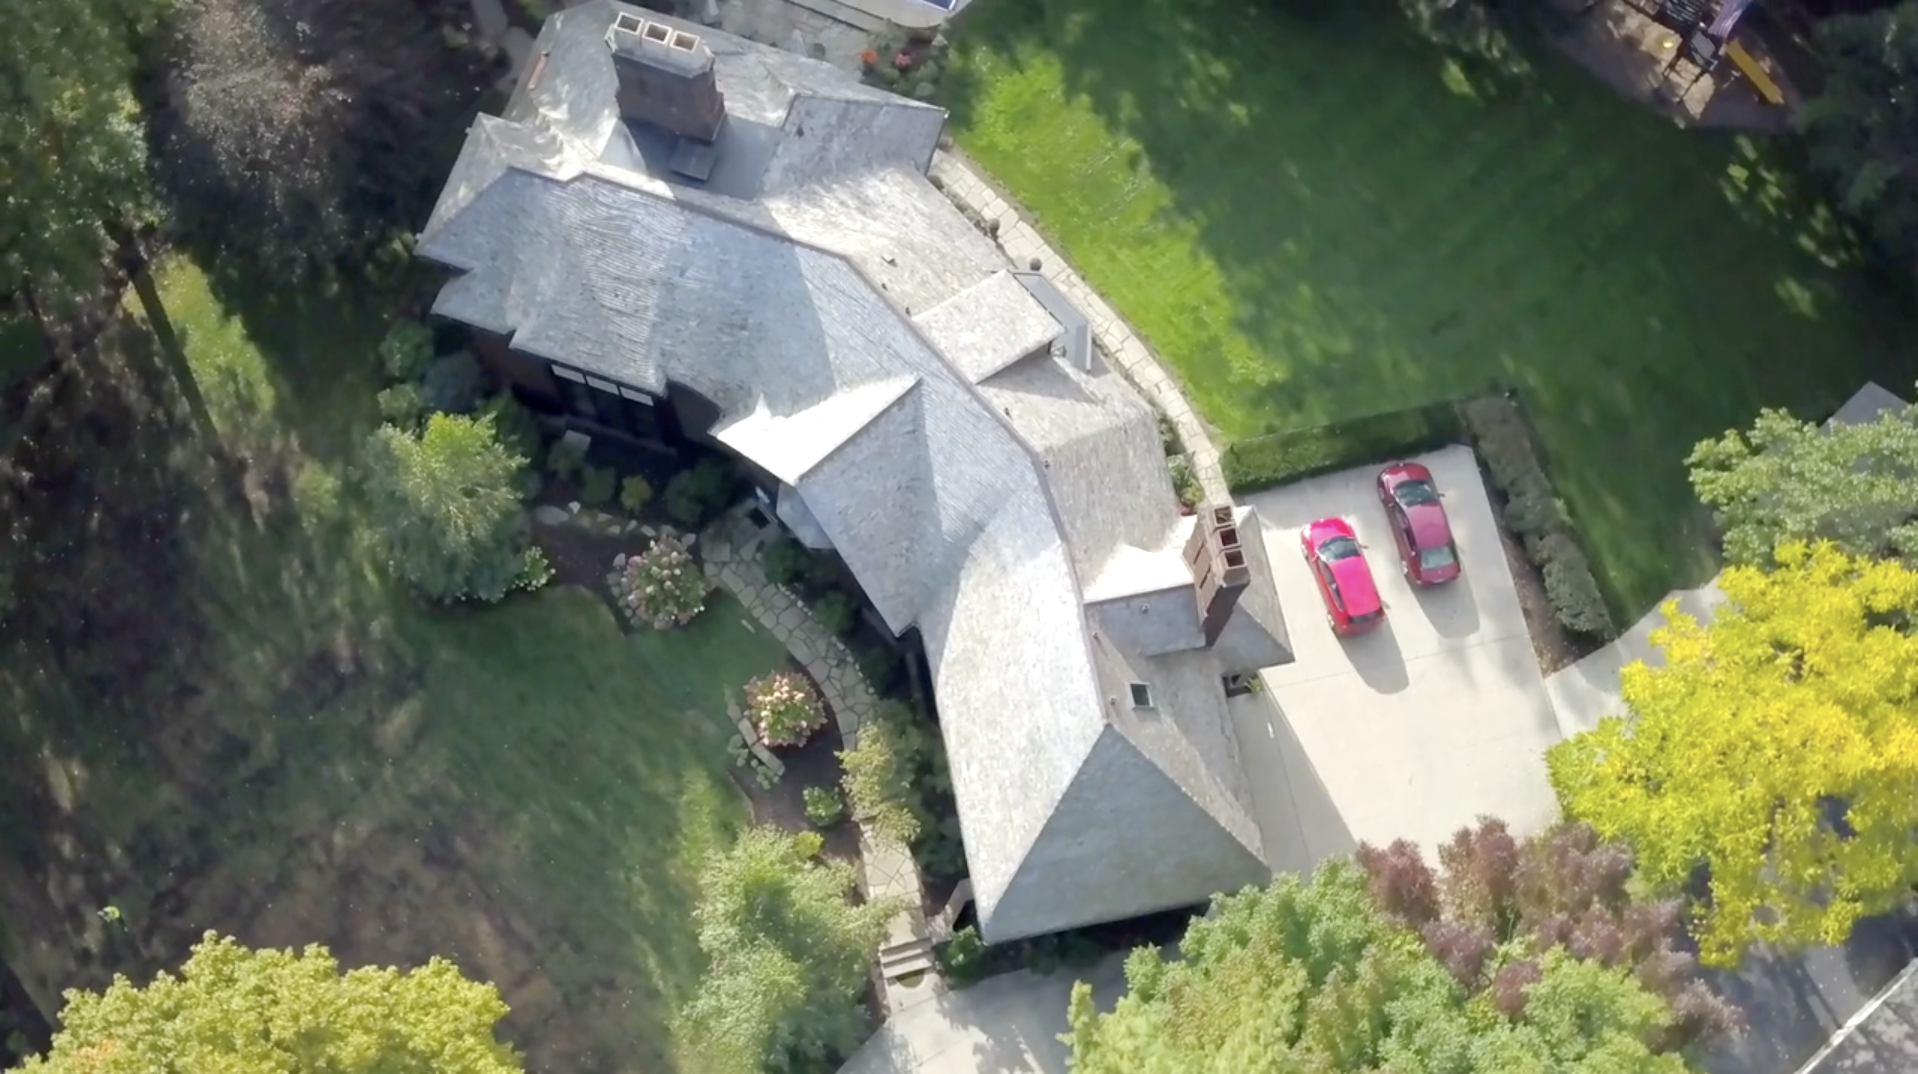 drone roofing footage